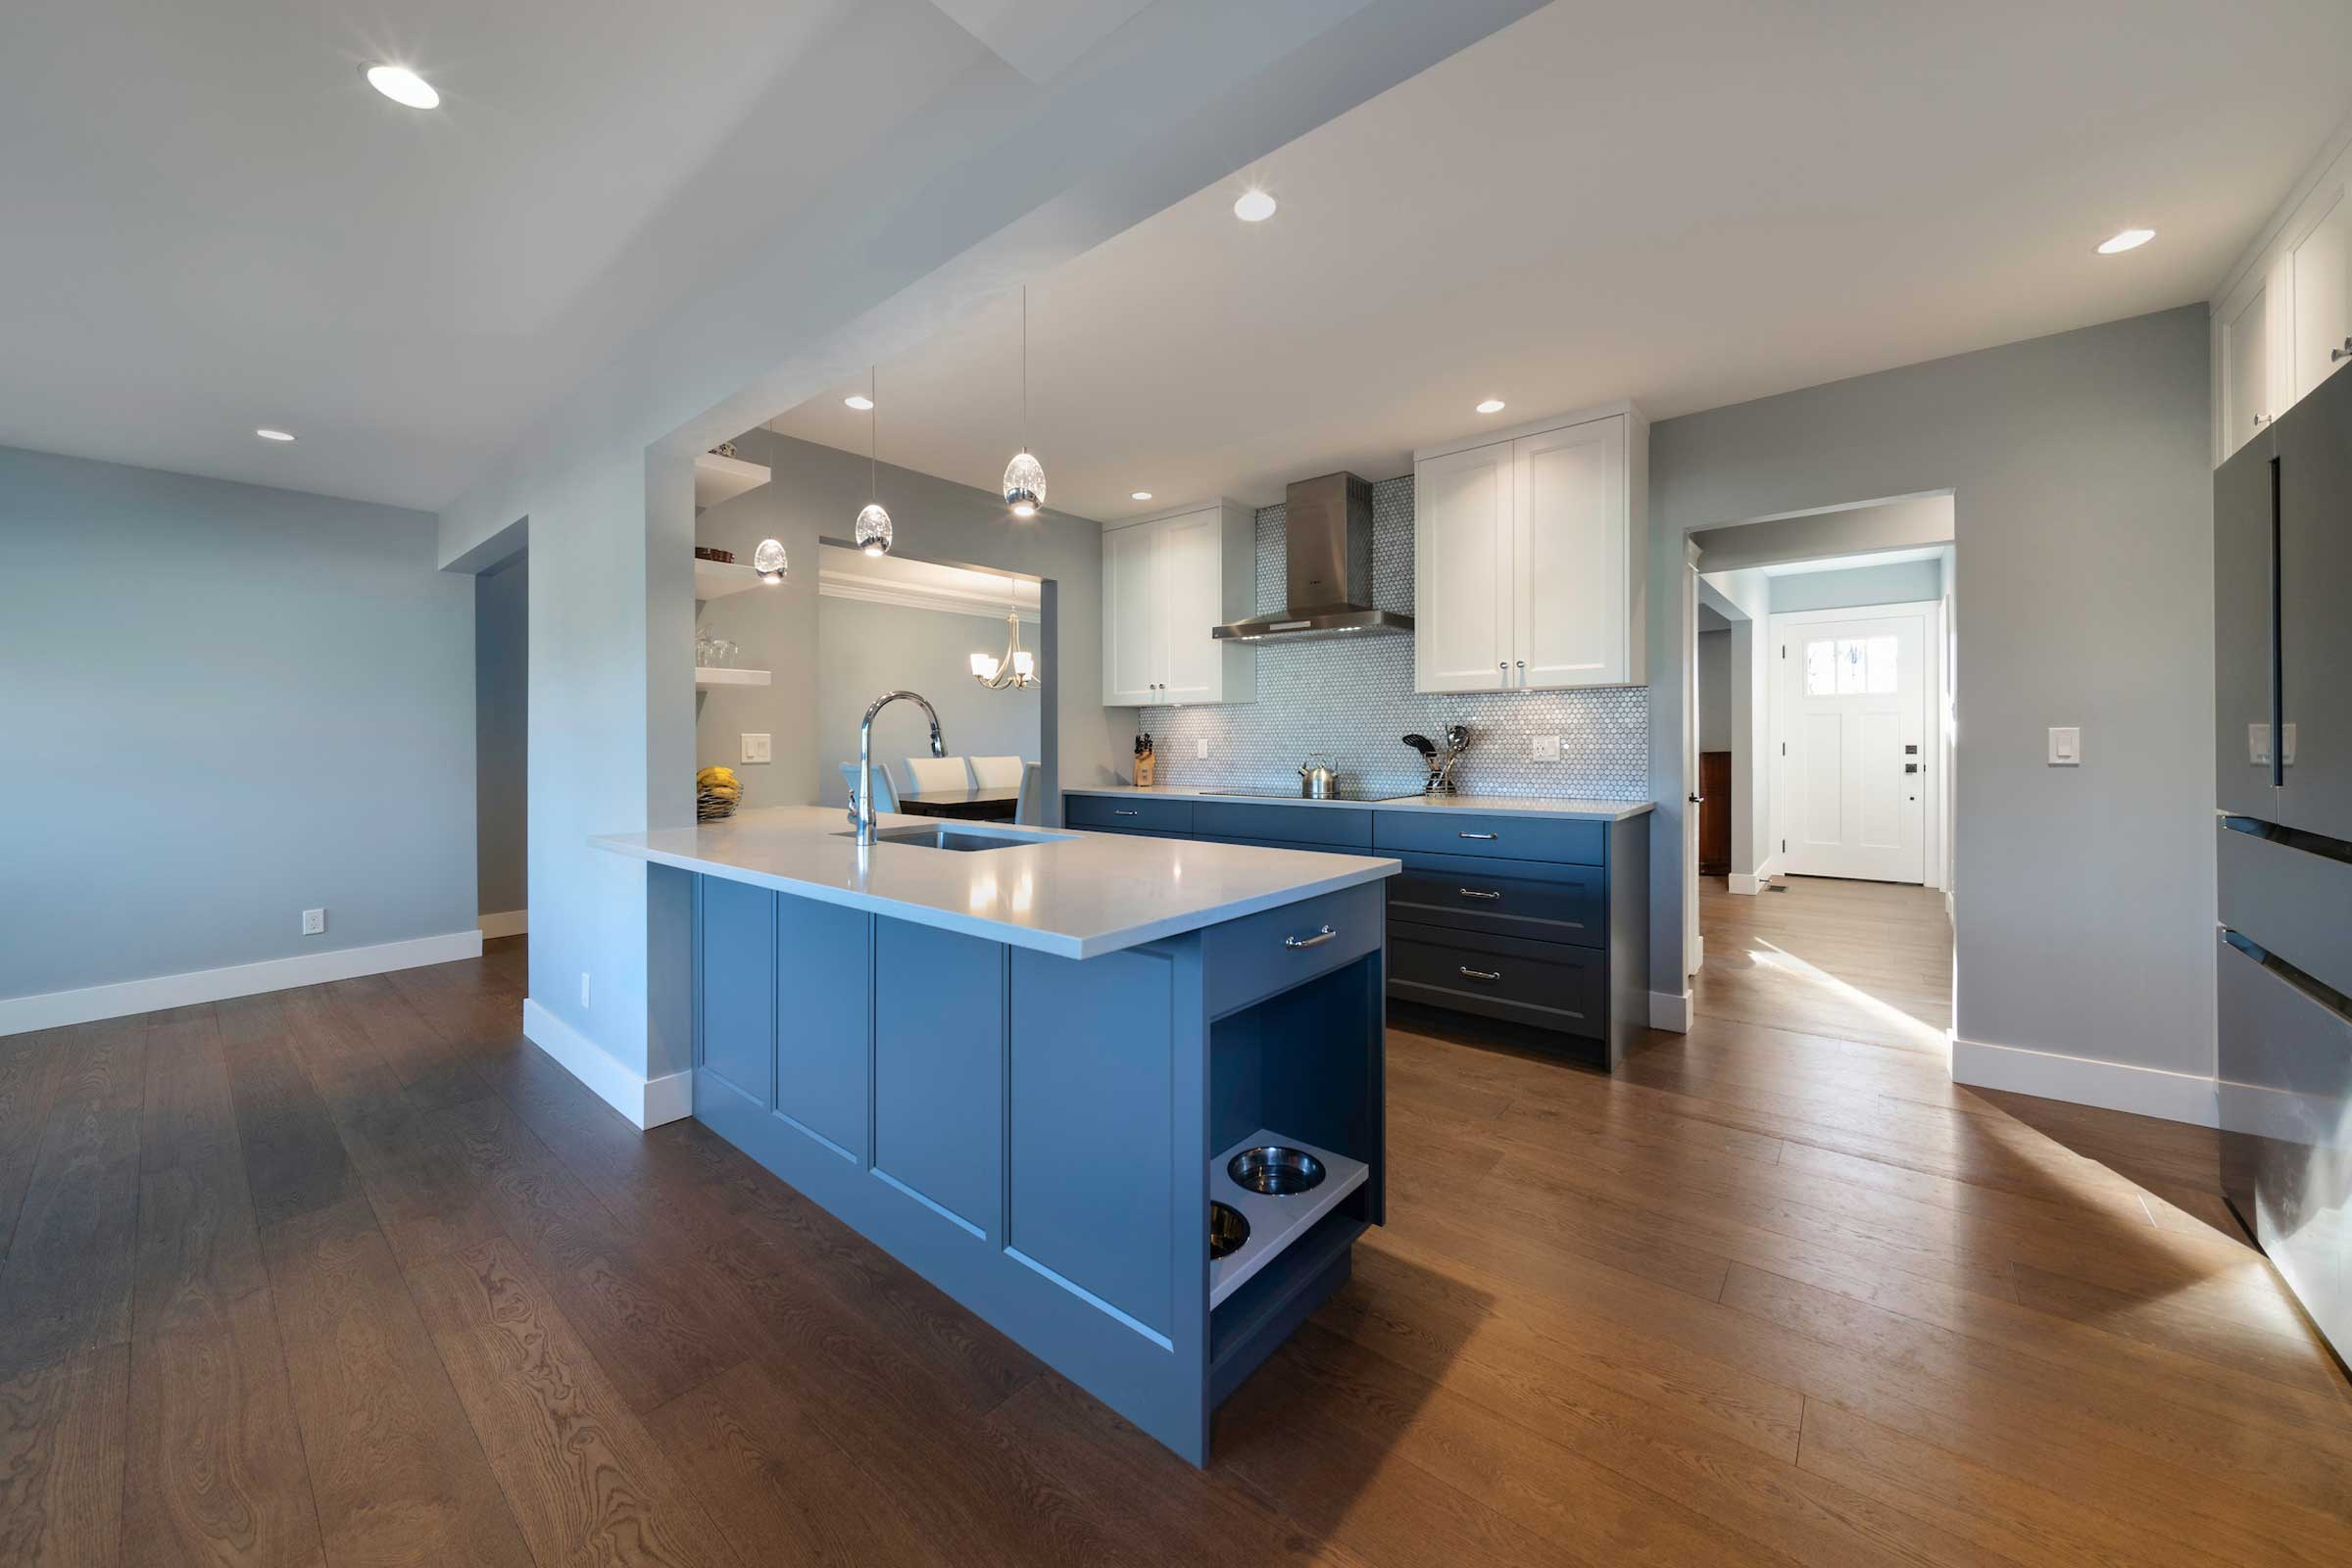 renovated kitchen with blue cupboards and hardwood floor